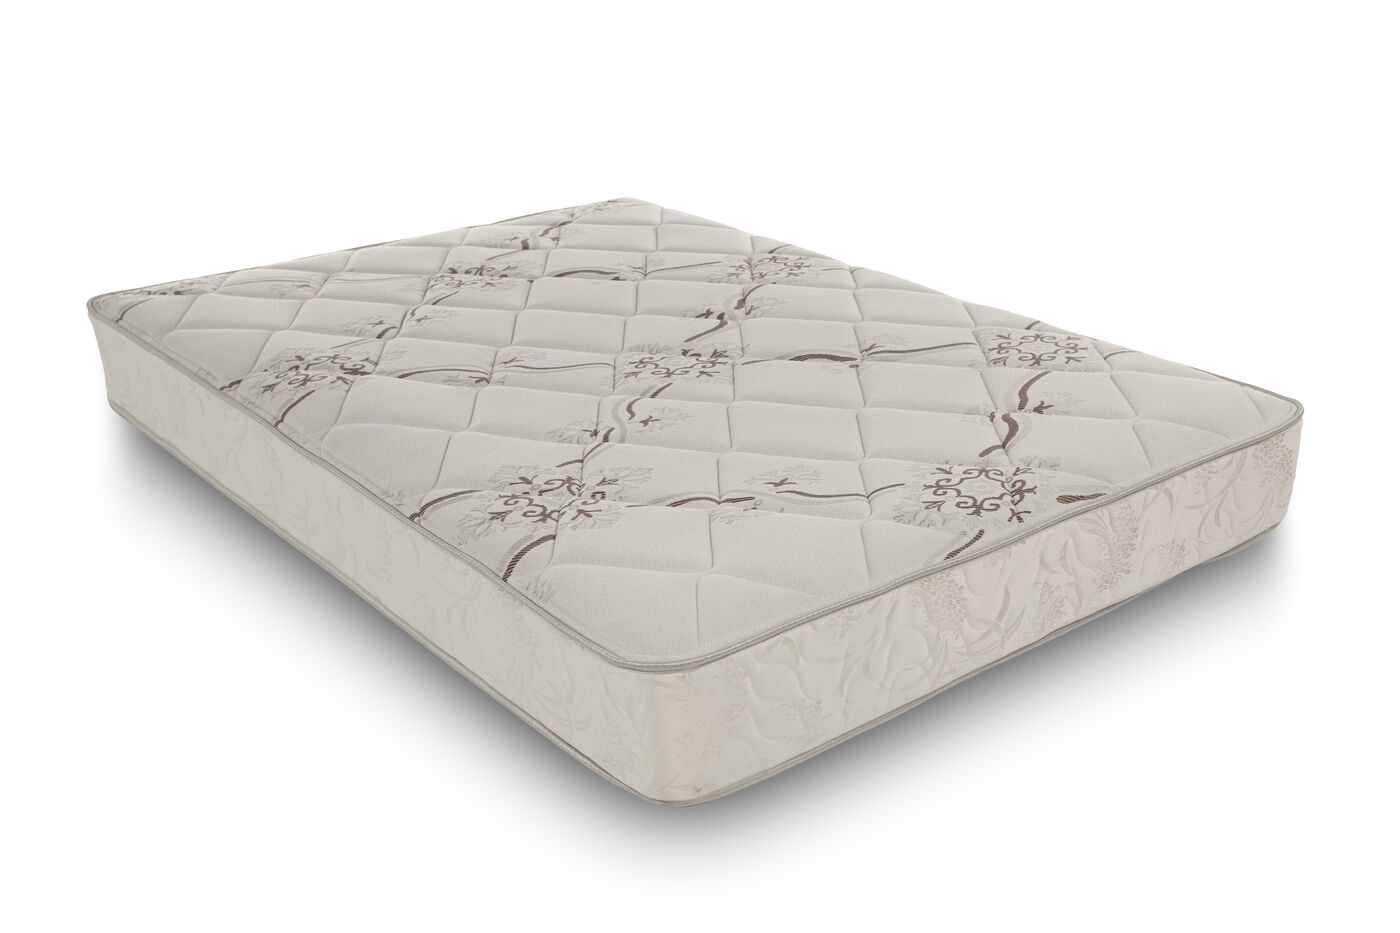 Lady americana factory select mattress mathis brothers for Which mattress company is the best